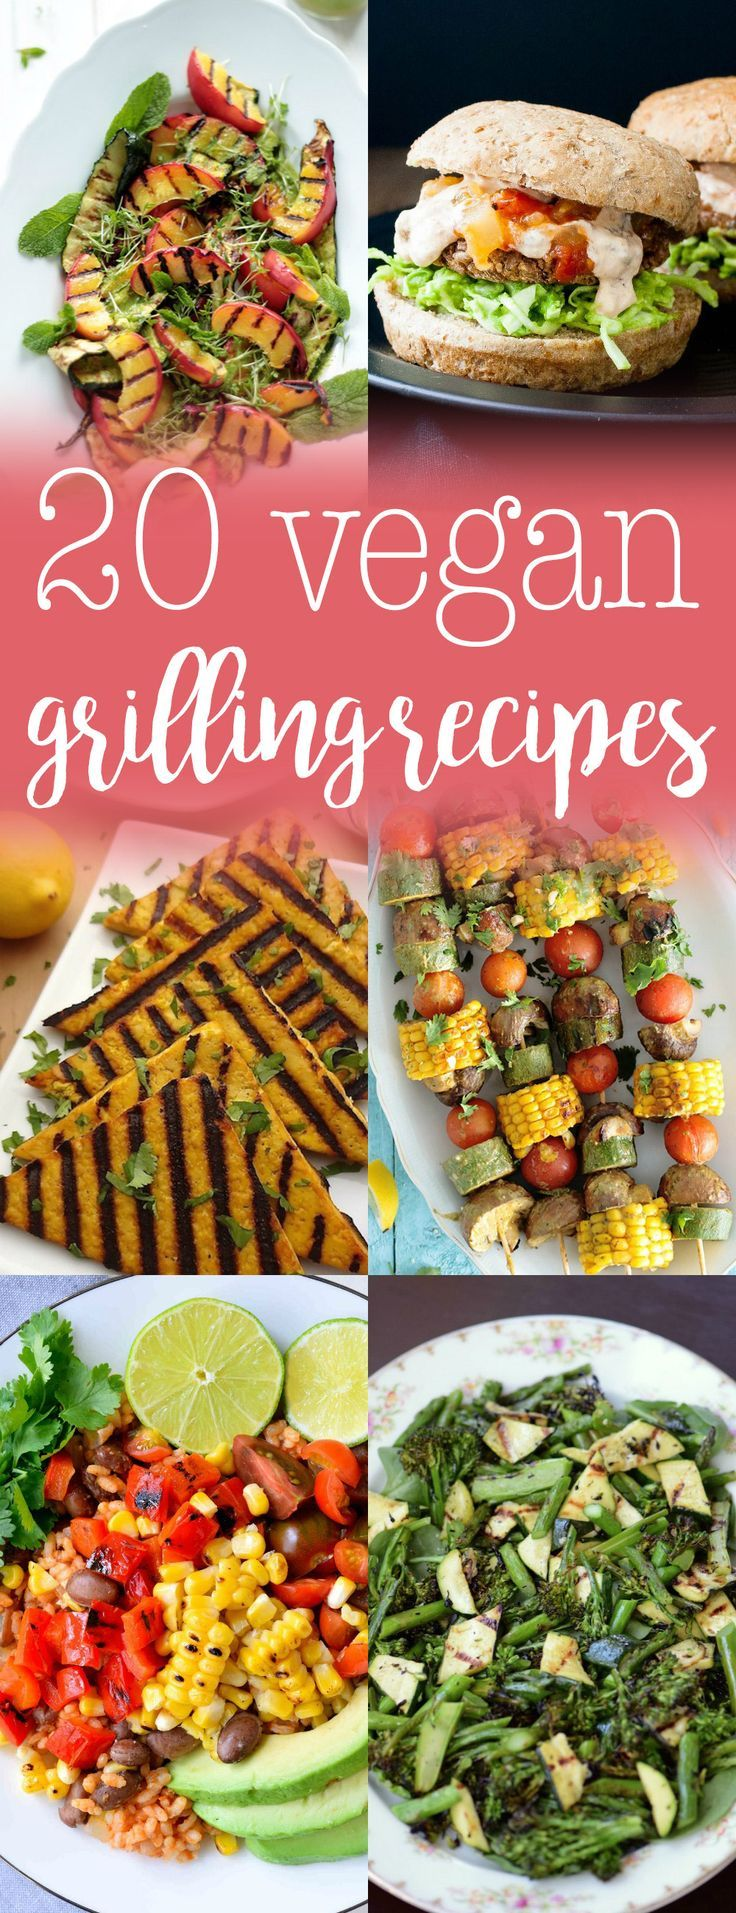 20 Vegan Grilling Recipes - summer grilling isn't just for meat! There are plenty of plant-based recipes for the grill. via /thecrunchychron/